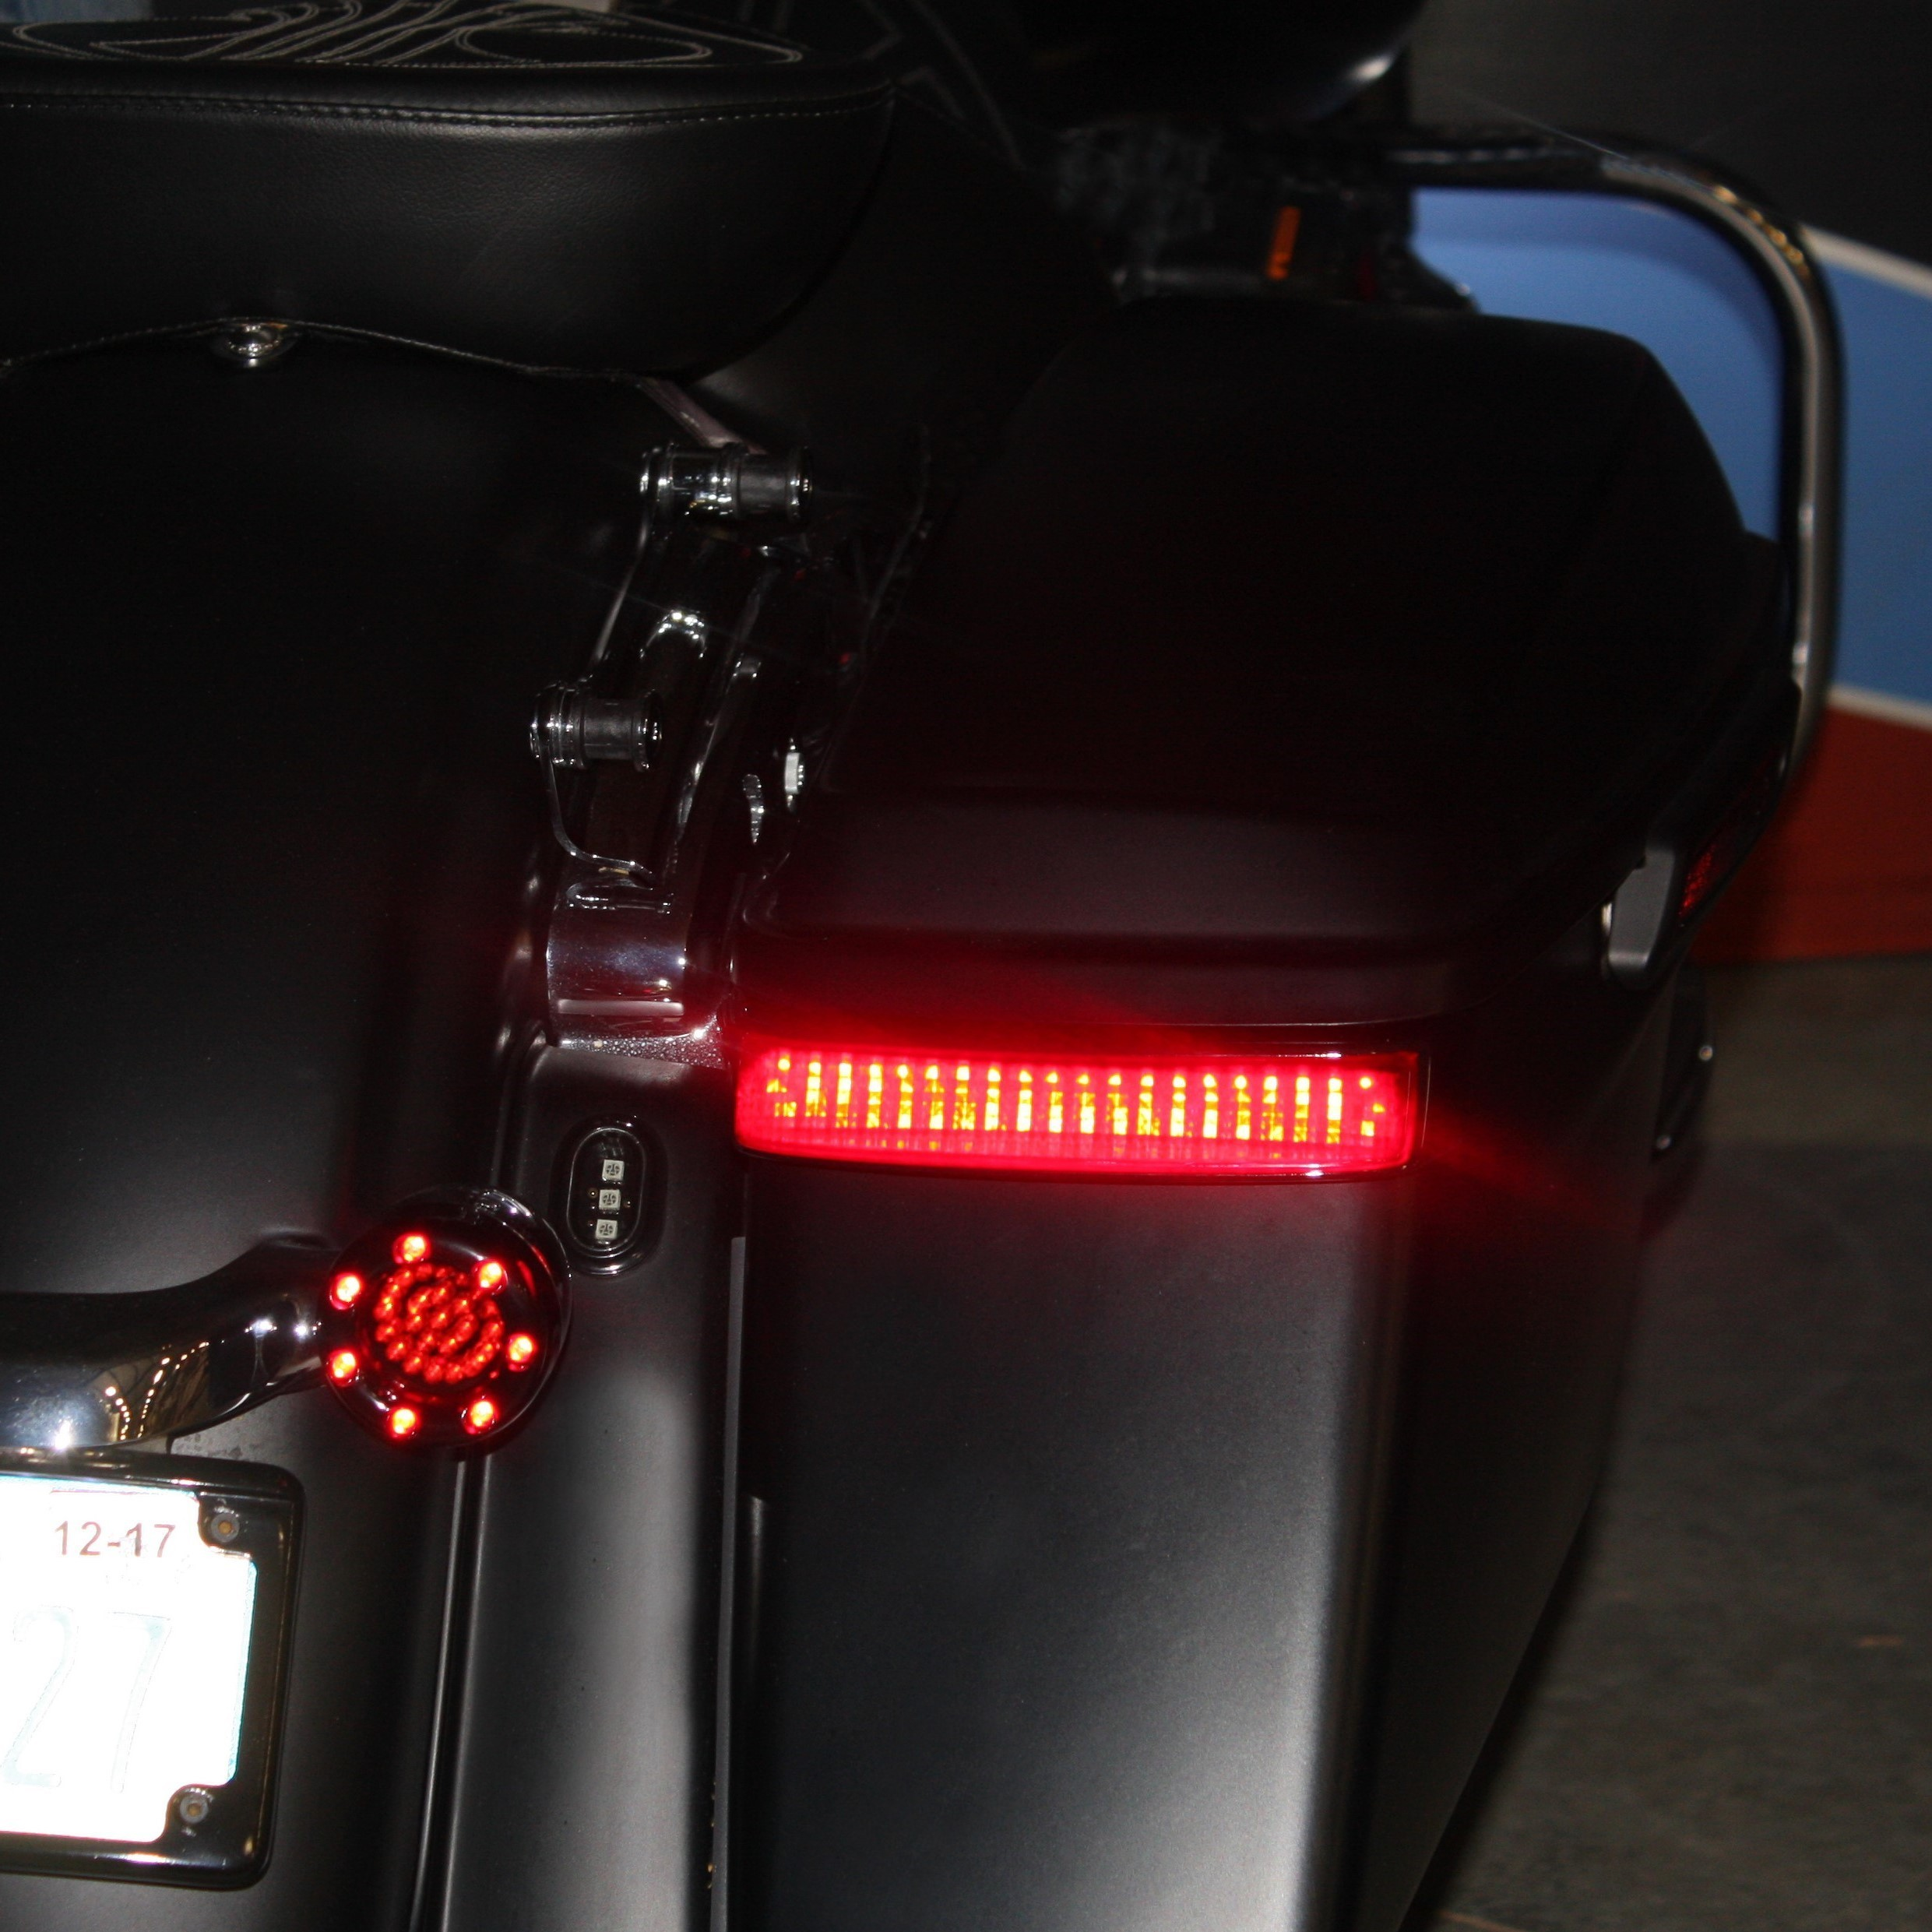 Wa Xx Xx likewise Moonsmc Led Brake Light Harley Grande besides F Drbigv as well L as well Img Edit. on motorcycle led lighting